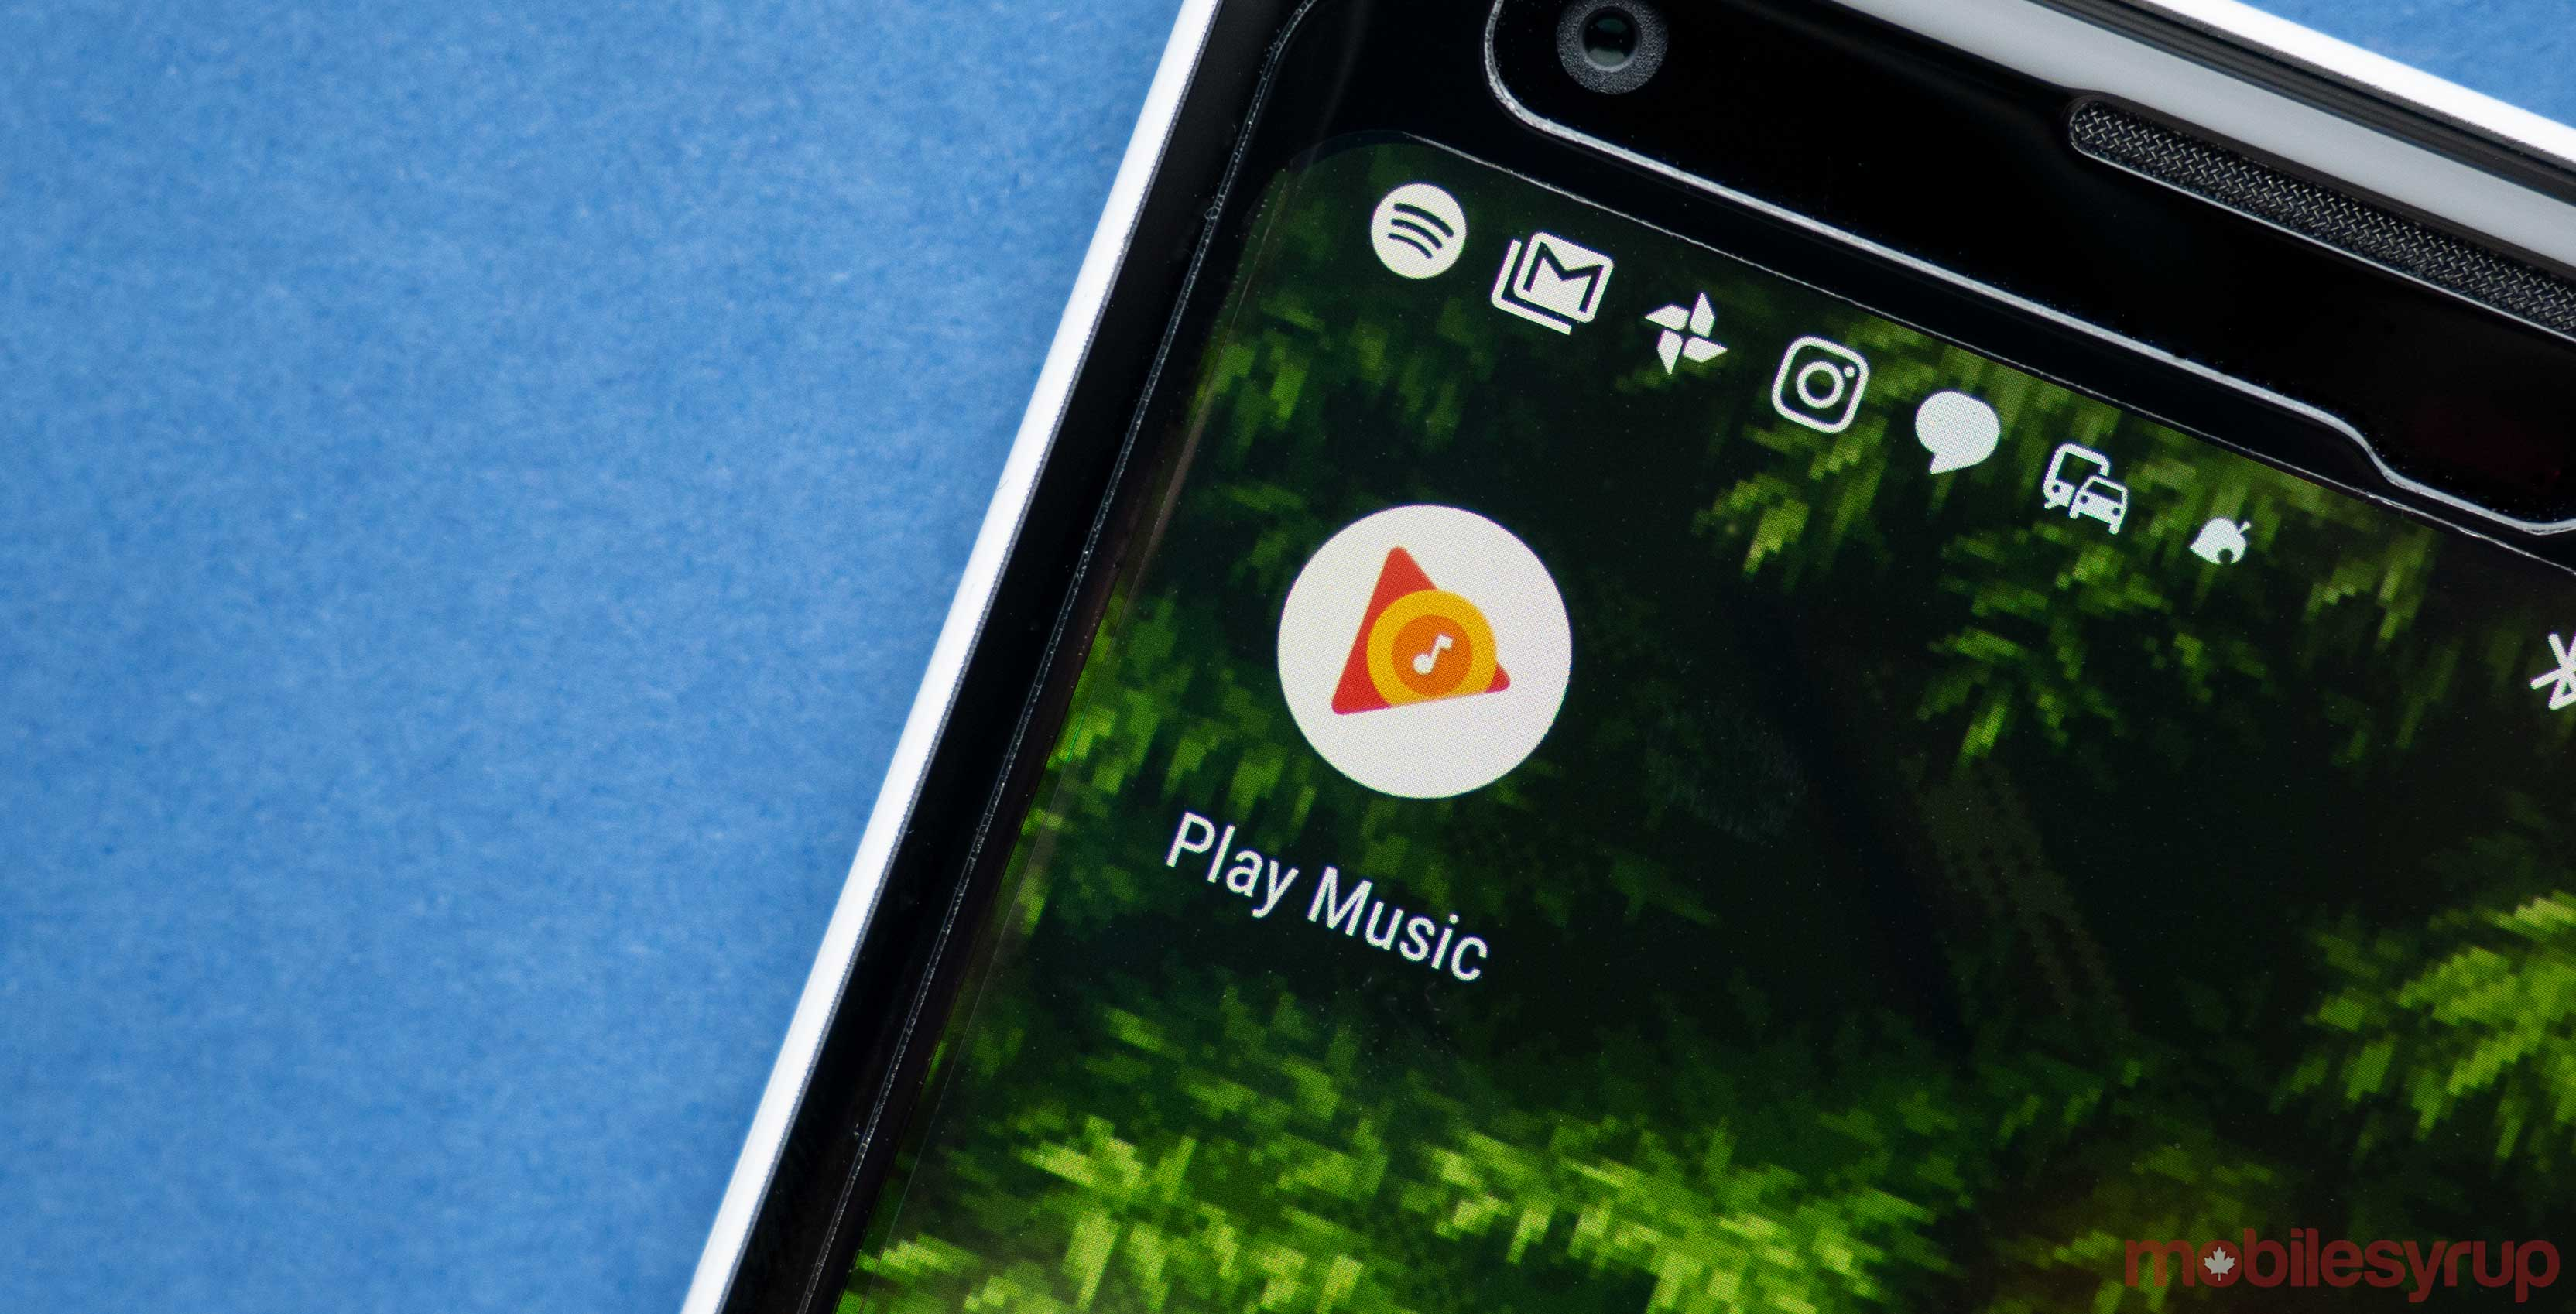 Google getting rid of Play Music subscriptions soon